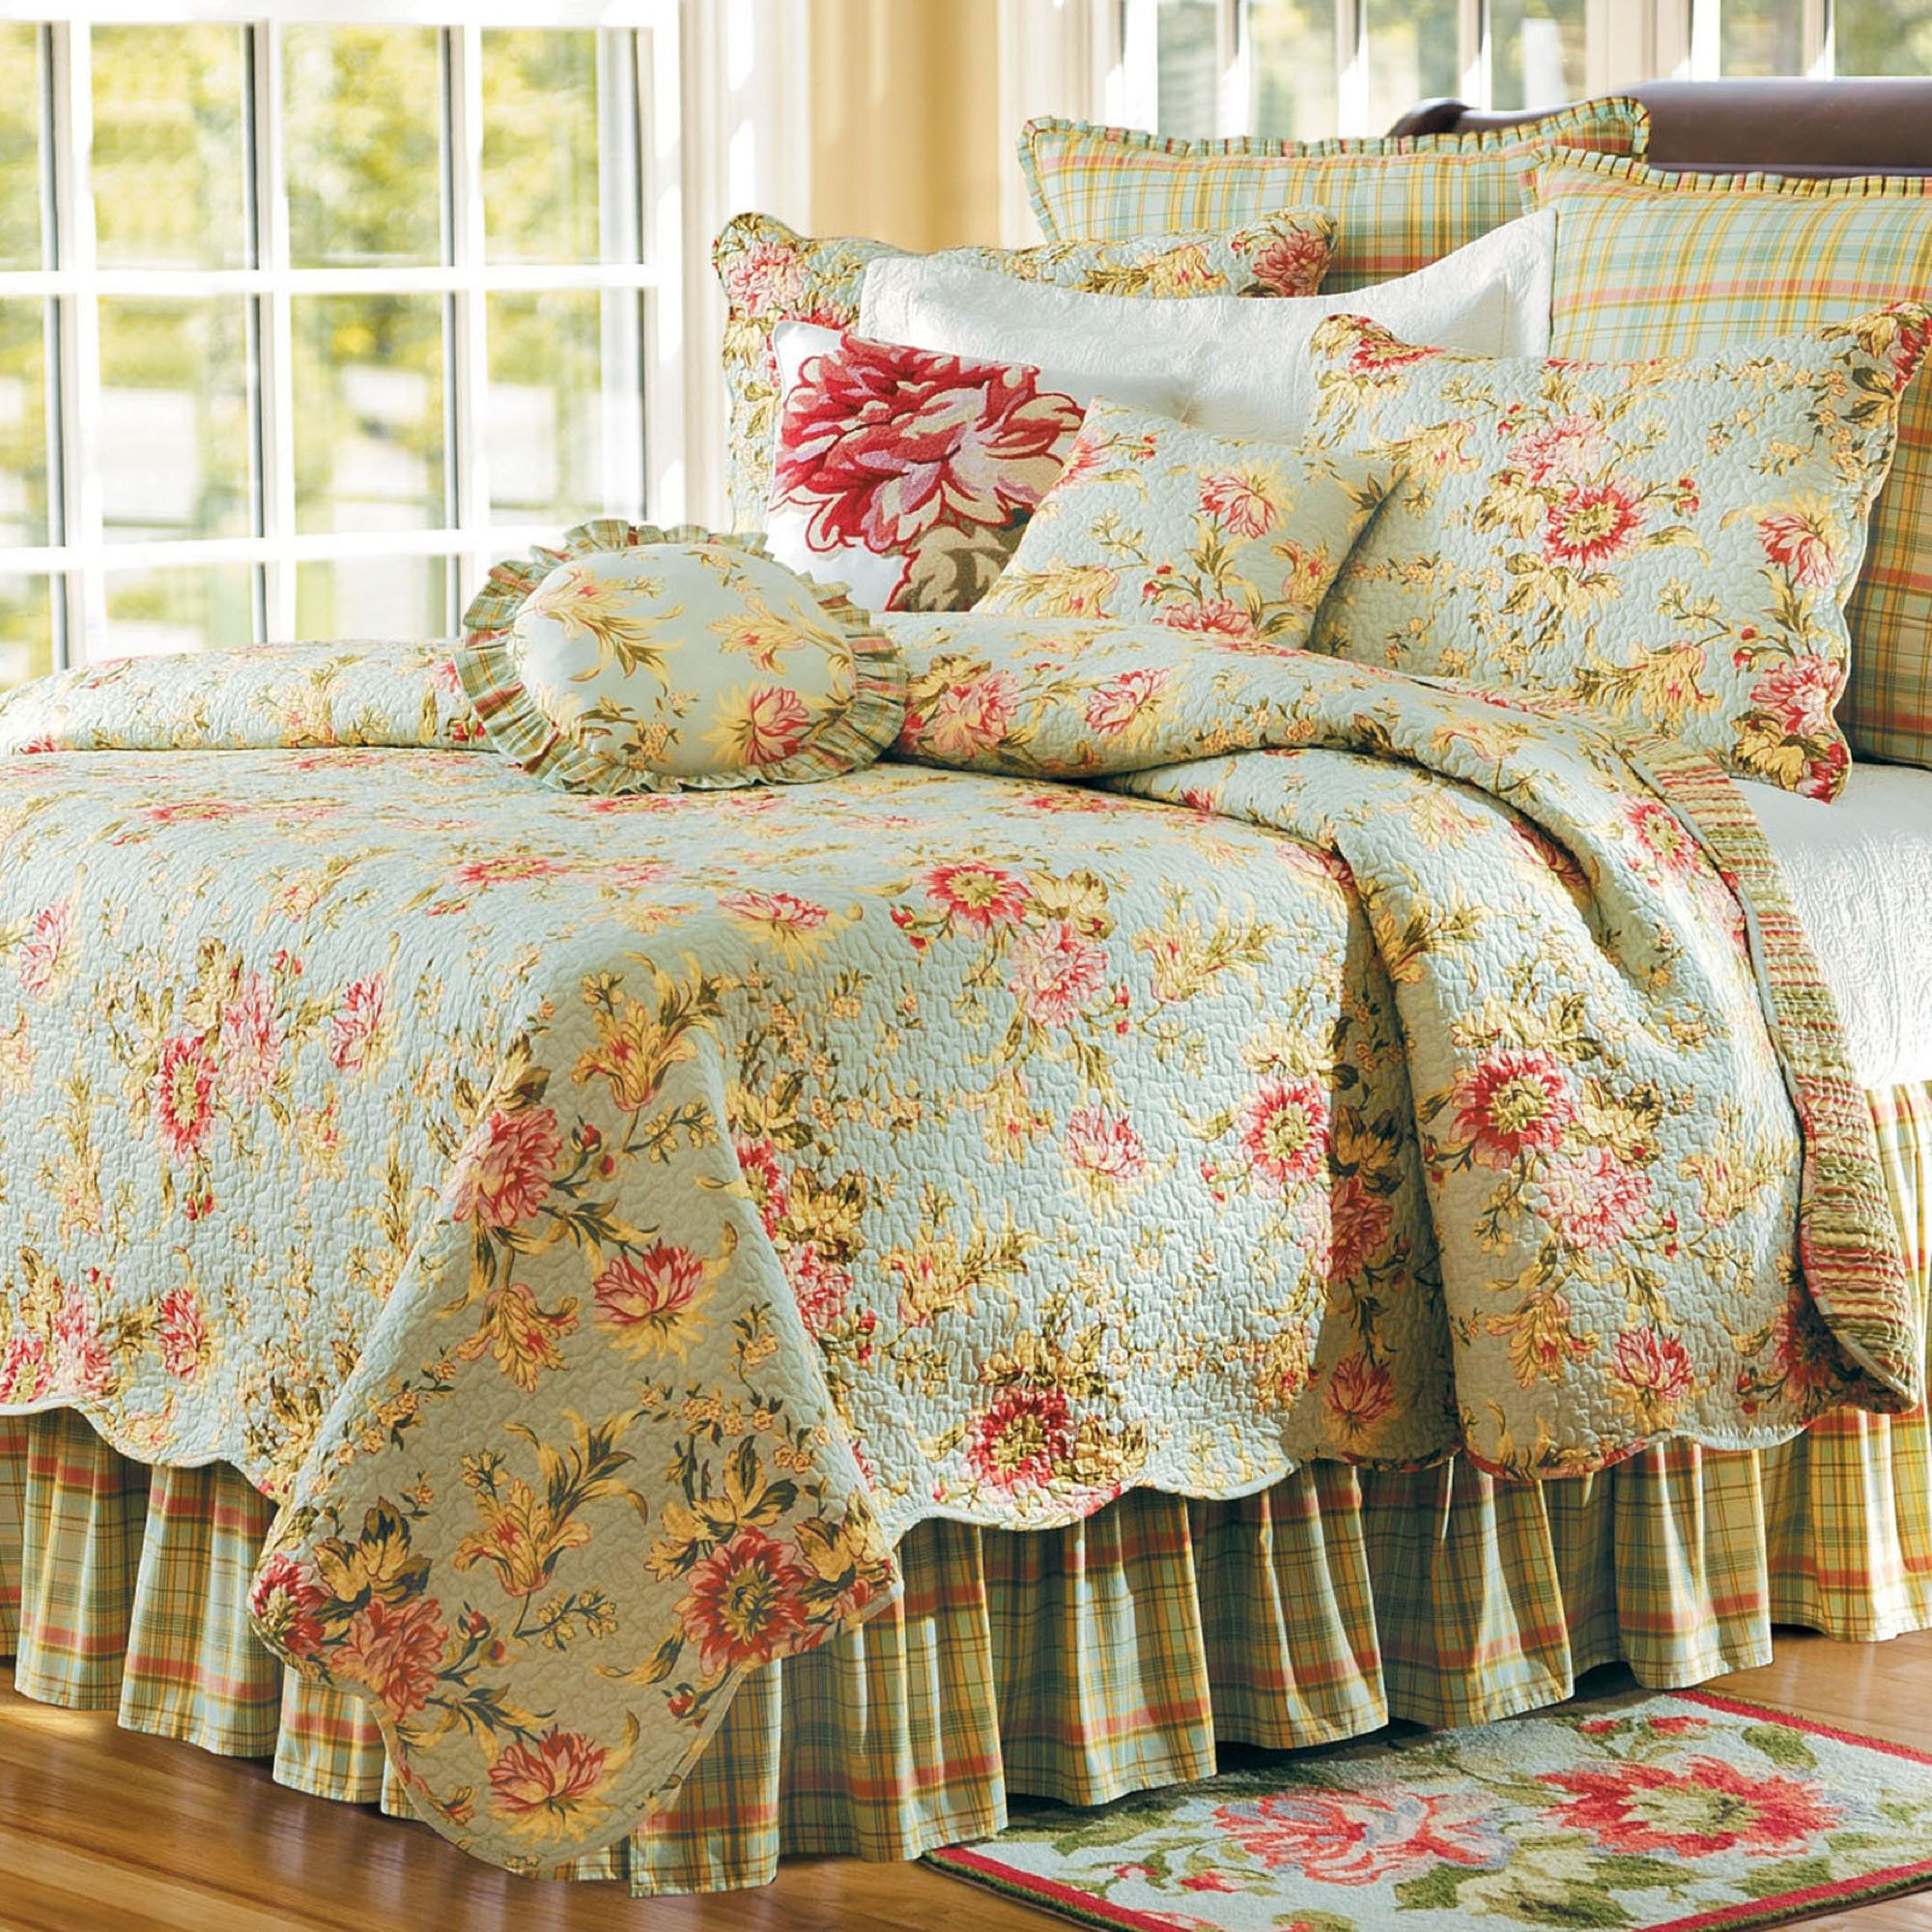 morning quilt gallery cf f belk bed fullqueen bedding viralizam quilts belks and c winter